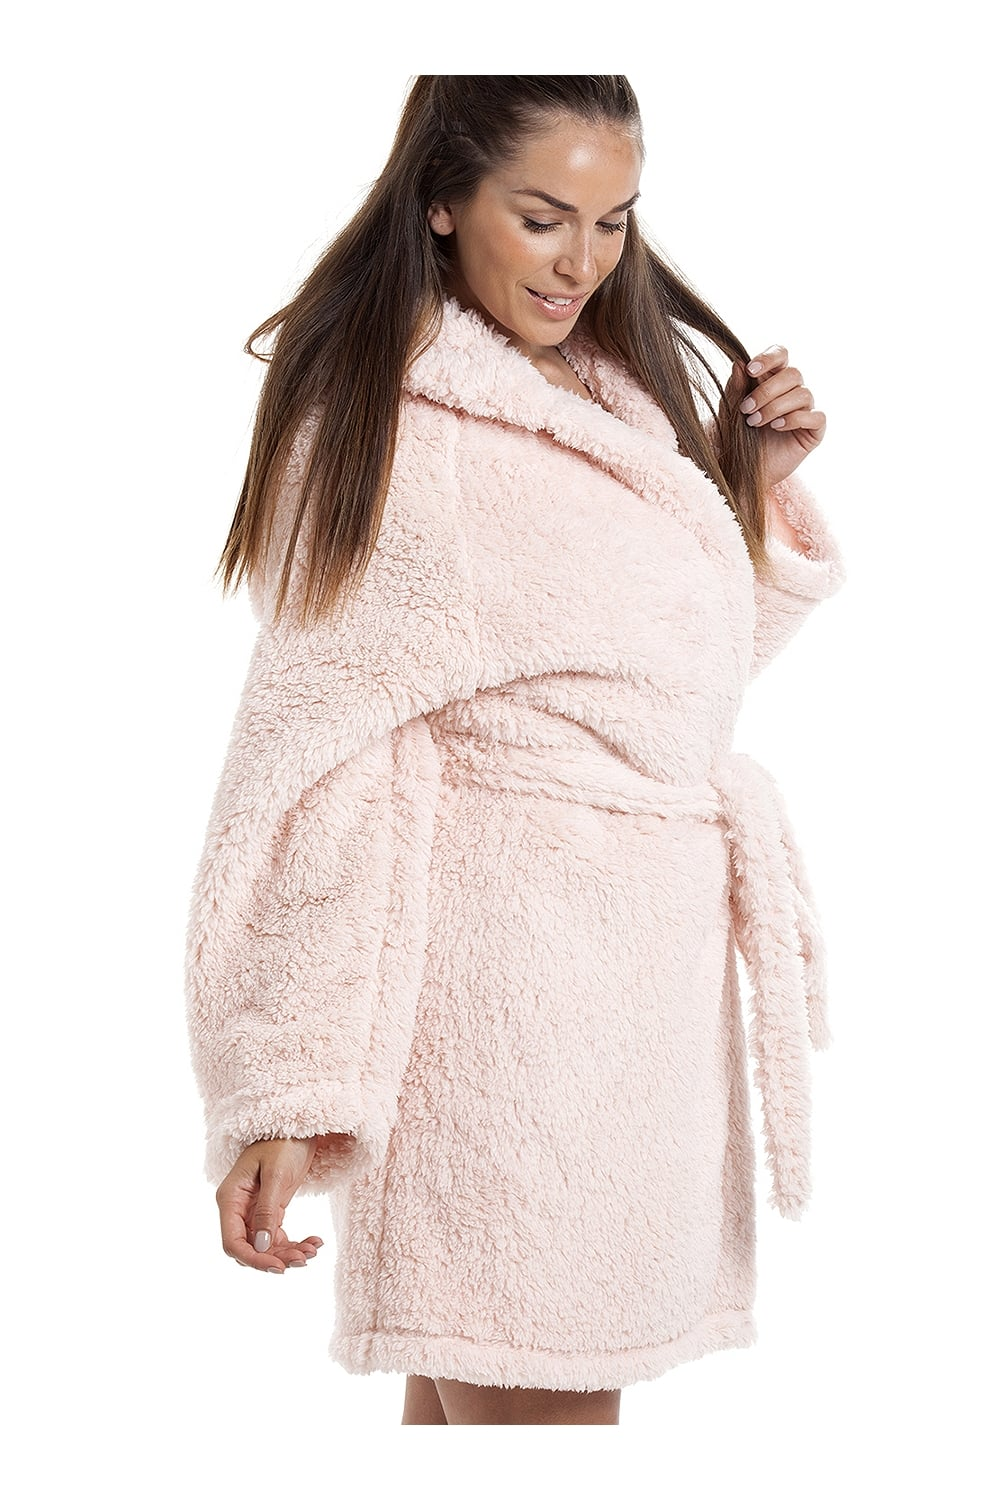 LADIES 3D SOFT & COSY ANIMAL DESIGN NOVELTY HOODED GIRLS DRESSING GOWN ROBES. Brand New. $ From United Kingdom. Buy It Now. Customs services and international tracking provided +$ shipping. Girls Dressing Gown Pink Princess Squad Sequin Detail Hooded Robe Bath Robe. Brand New. $ to $ From United Kingdom. Buy It Now.